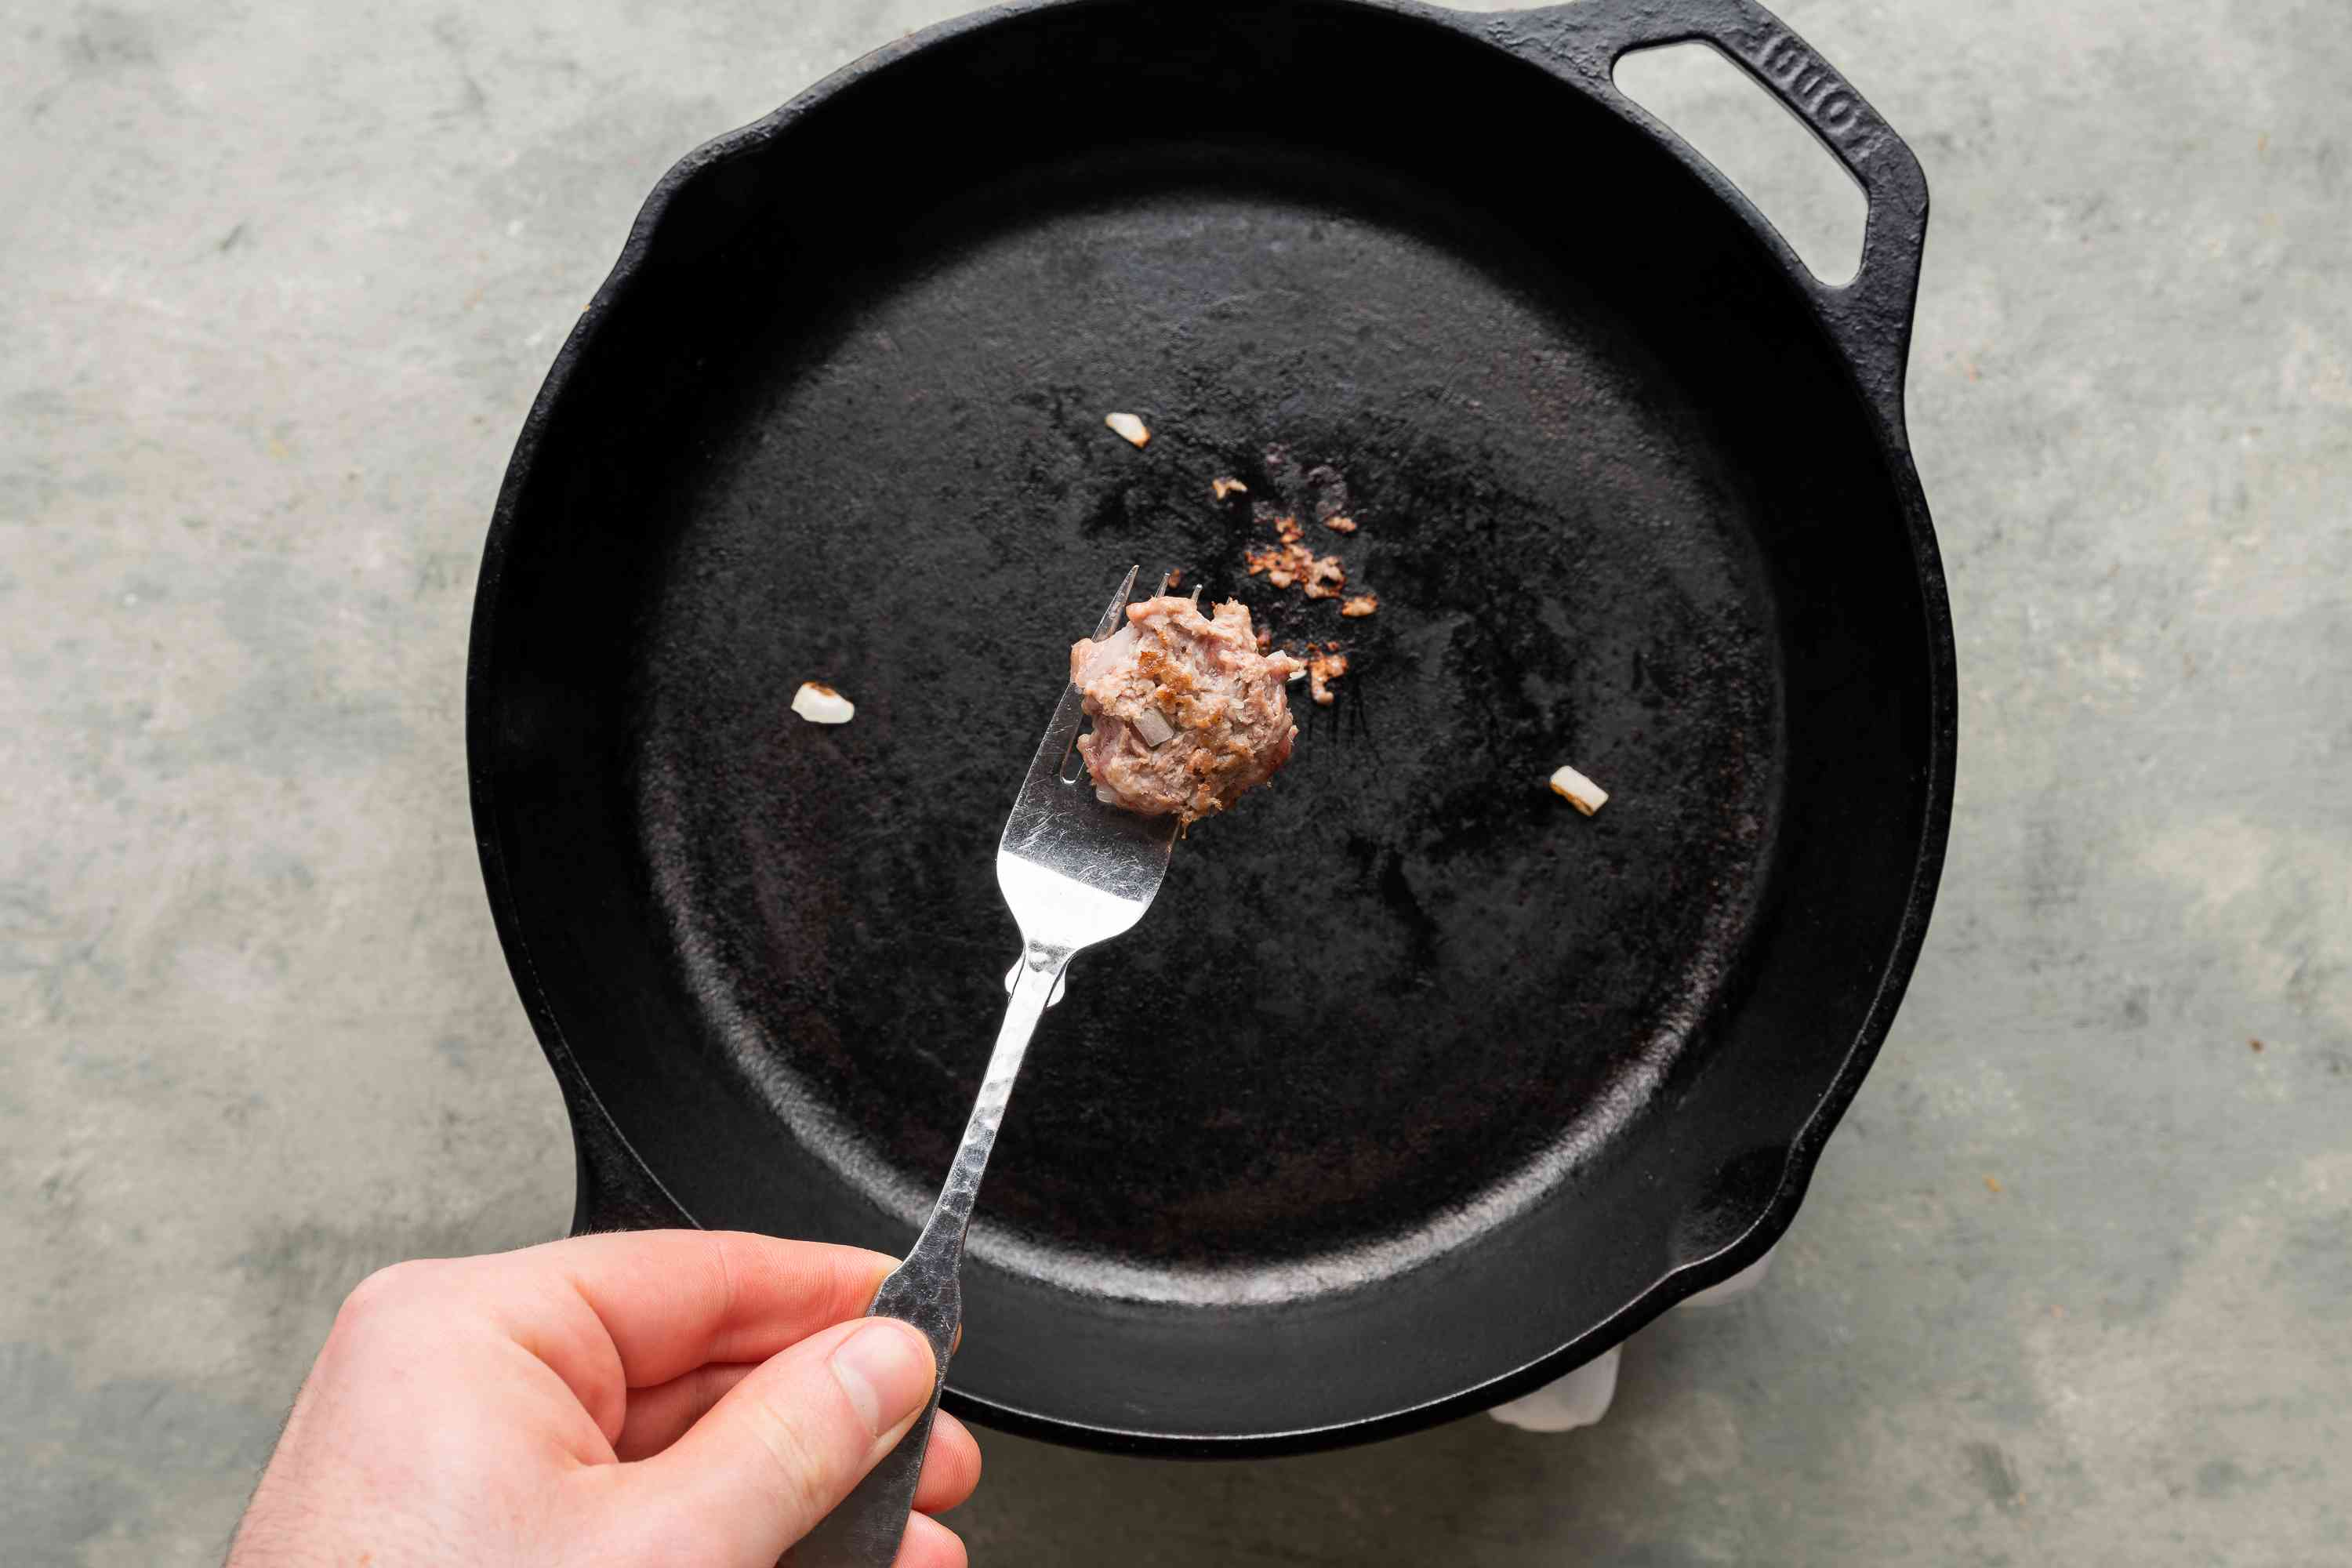 small piece of cooked meat, fried to test the seasoning